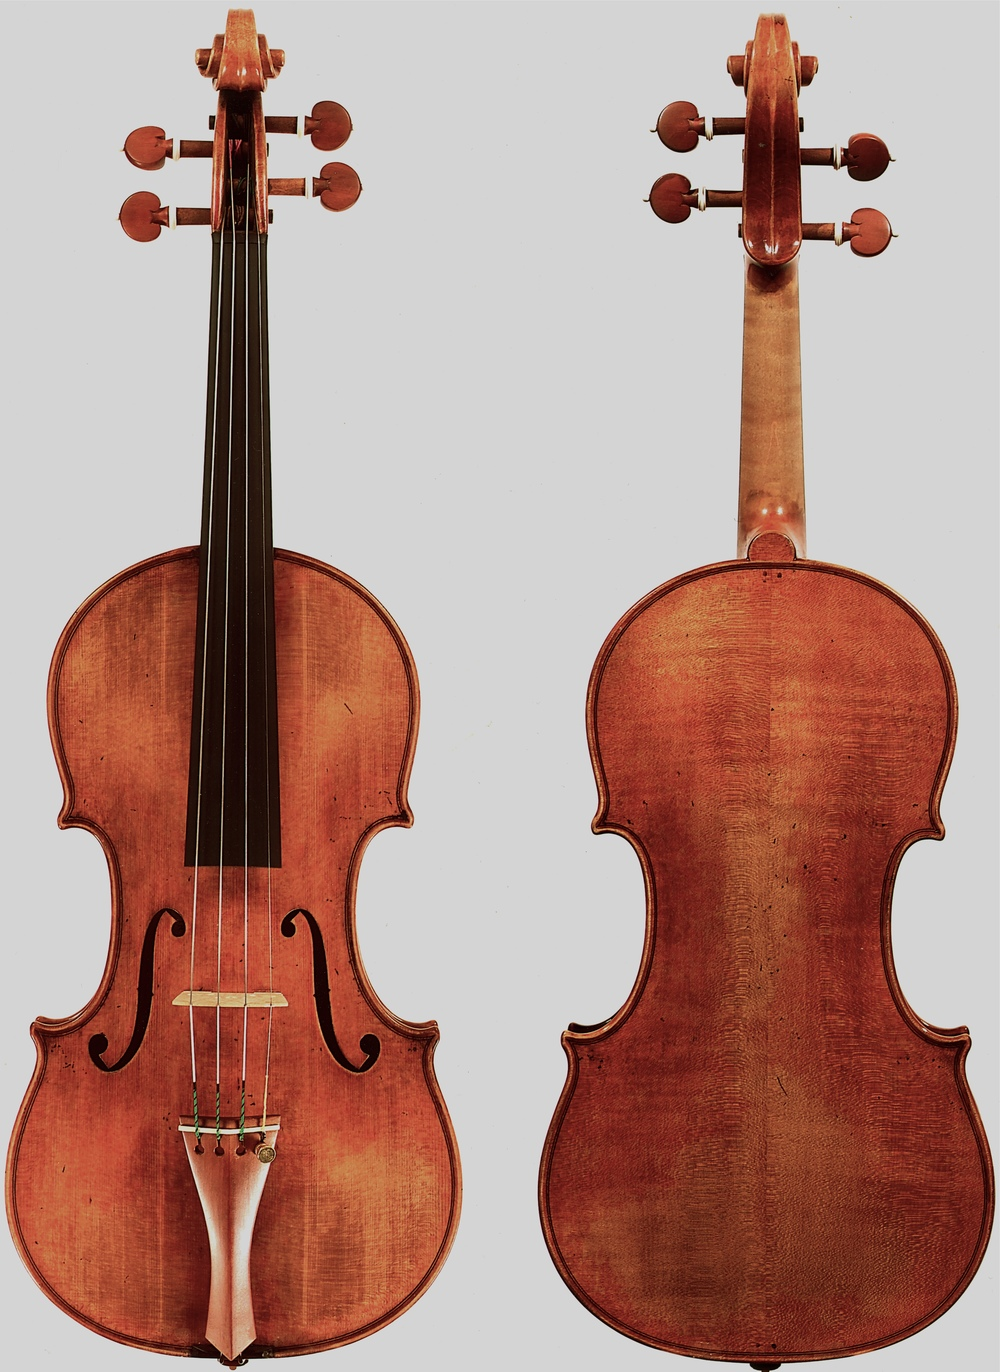 041485d49 First, thousands of violins have been made using the notion or theory based  on plate flexibility for the last two centuries, yet no consistently  superior ...